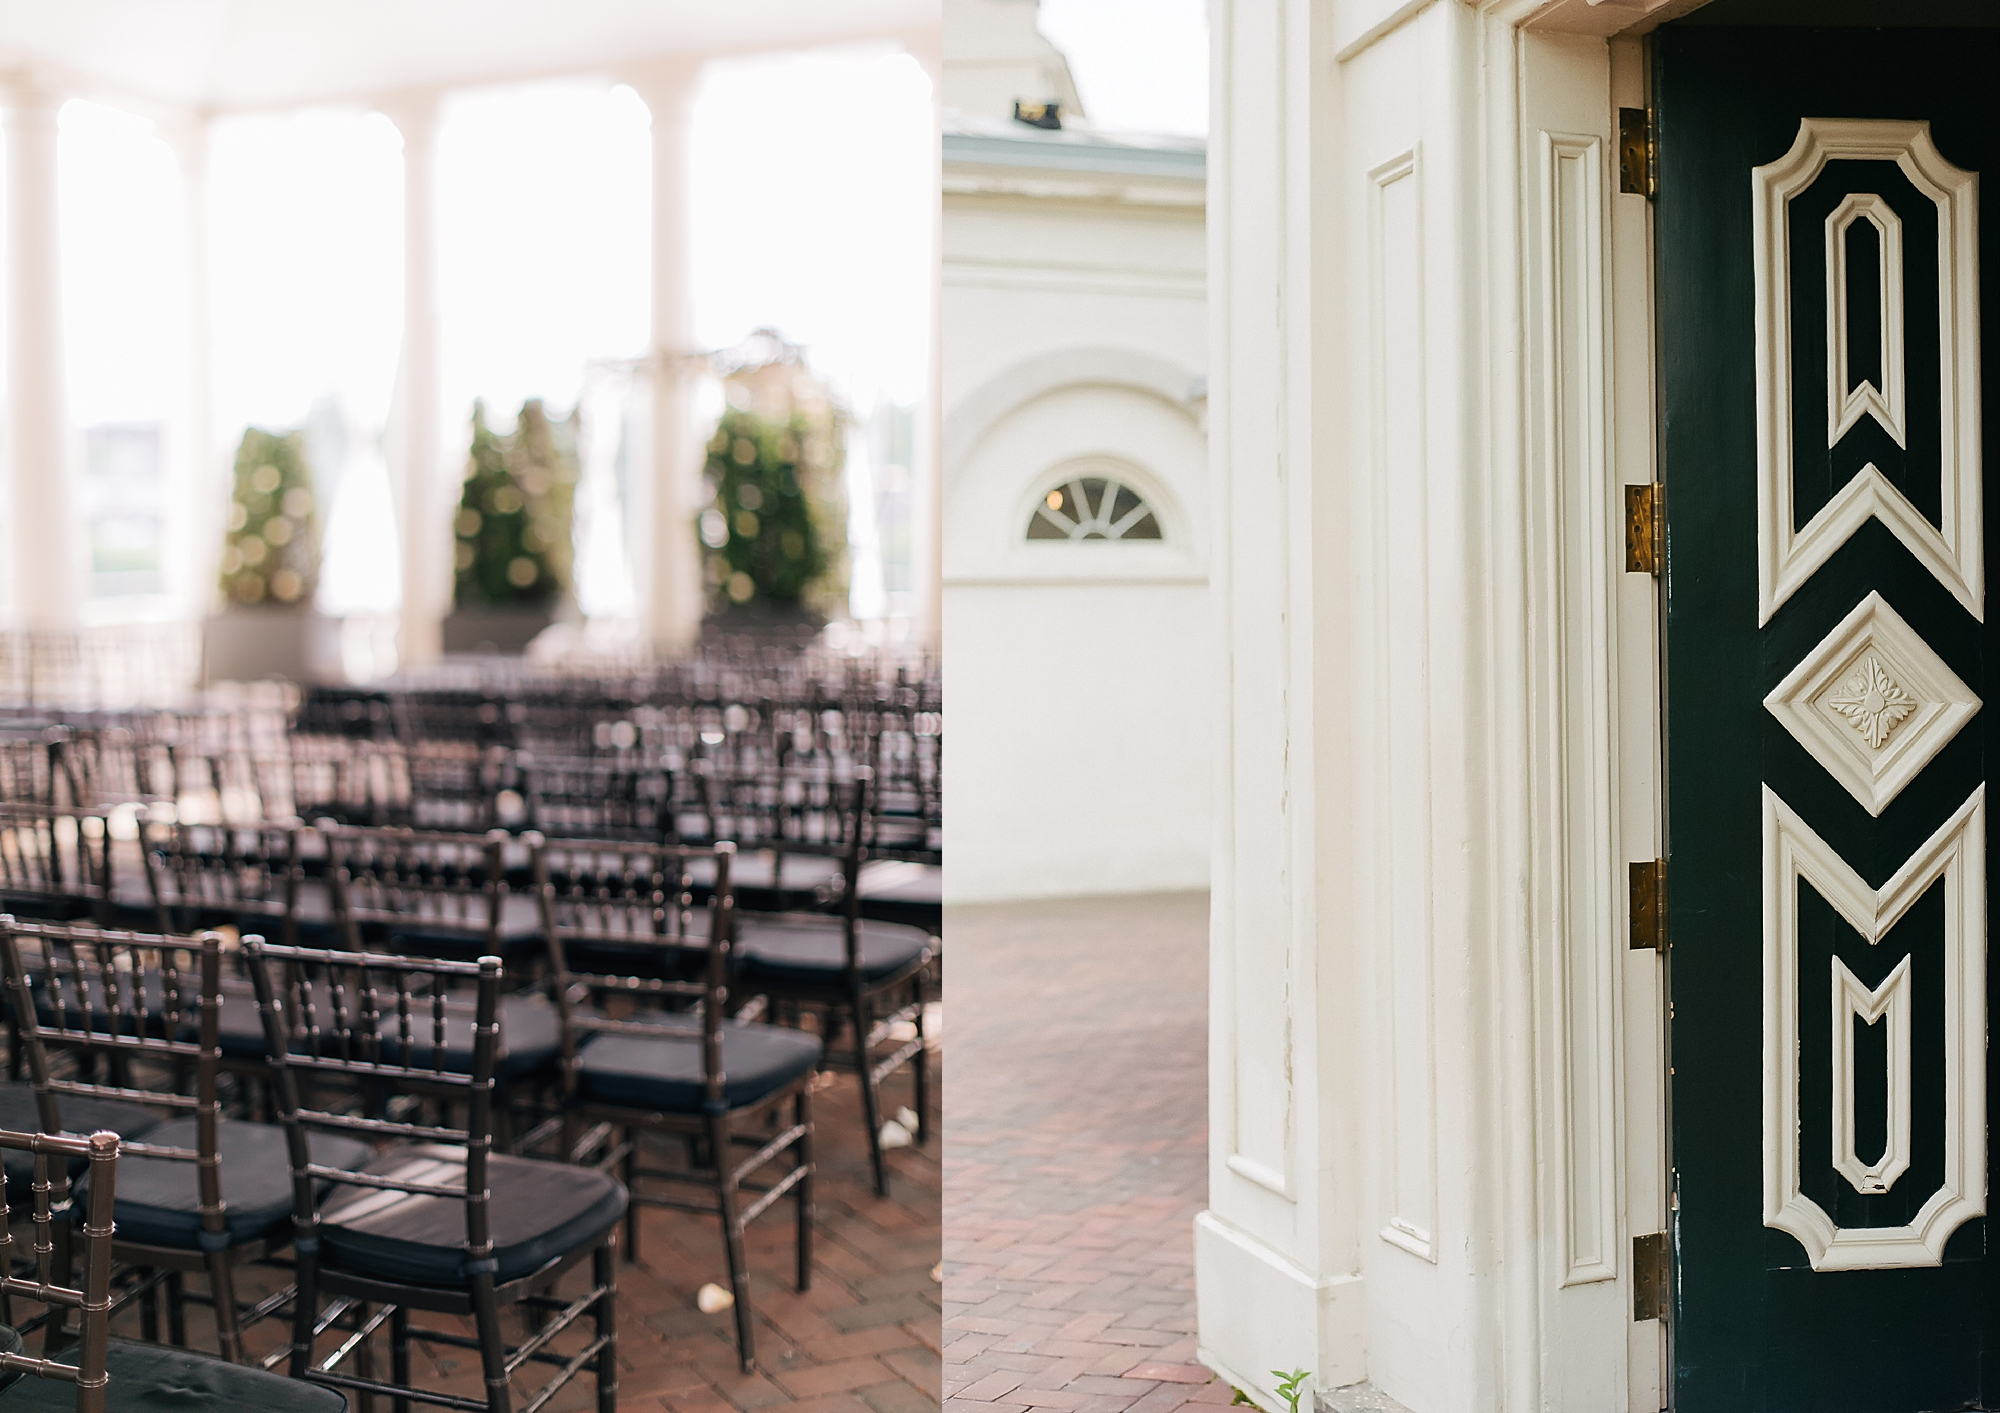 Candid and Genuine Fairmount Waterworks Philadelphia Wedding Photography by Magdalena Studios 0026 2